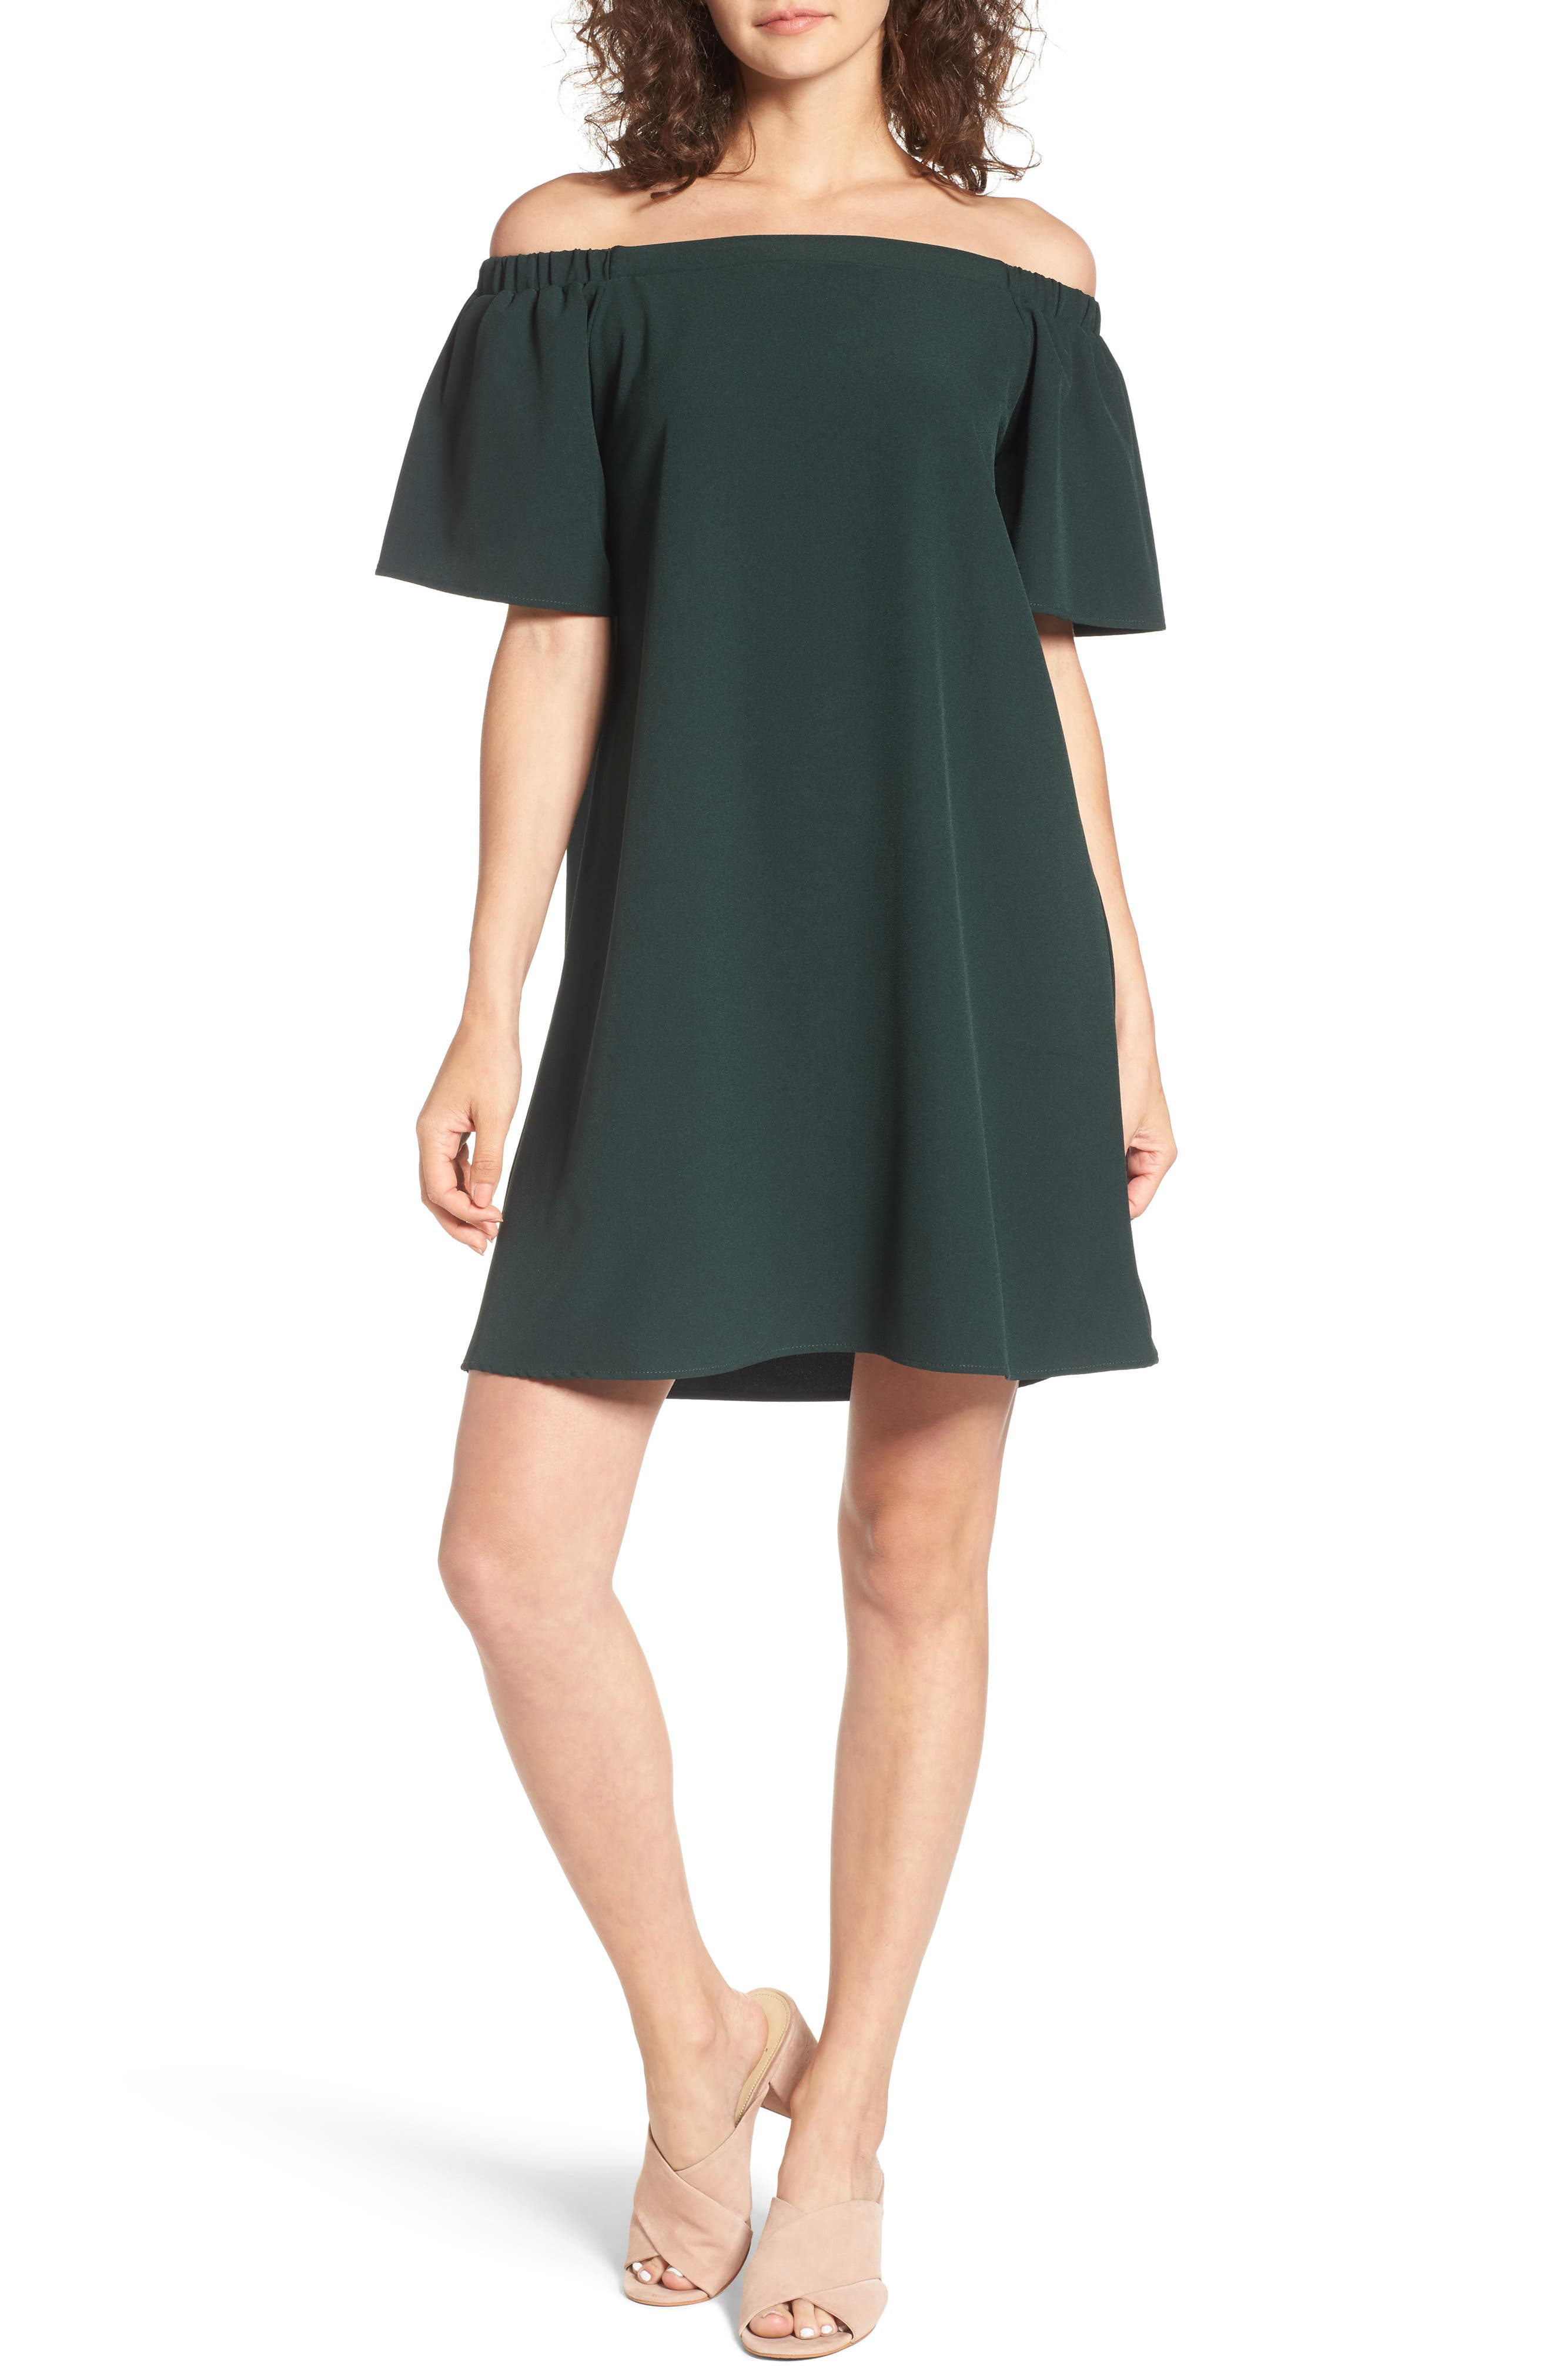 Alternate Image 1 Selected - BP. Off the Shoulder Shift Dress